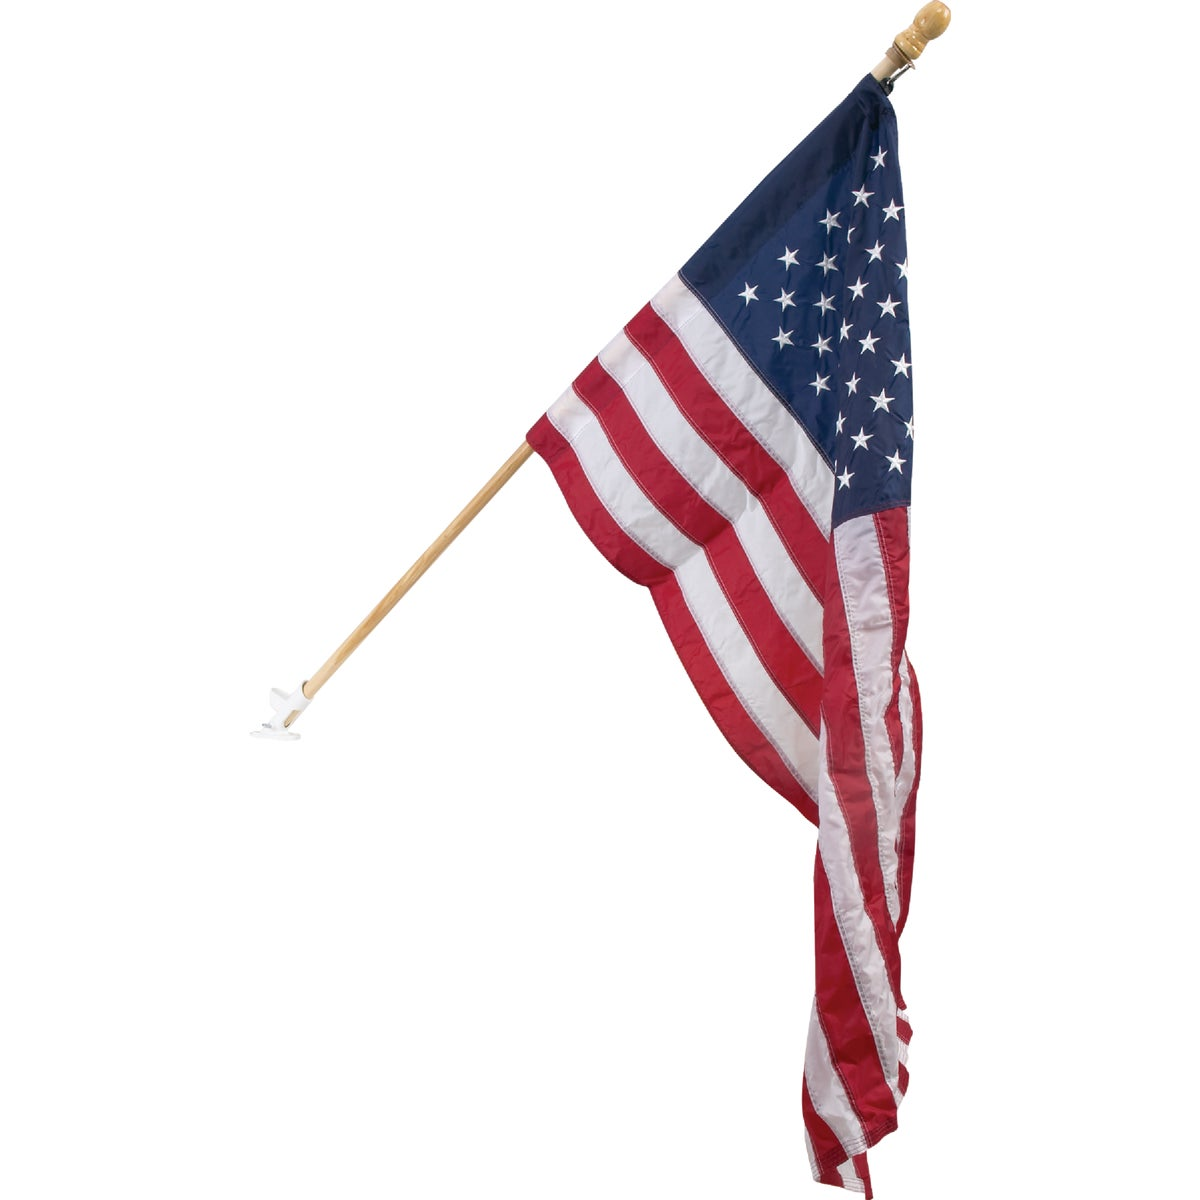 NYLON BANNER FLAG KIT - DFS1USA-1 by Valley Forge Flag